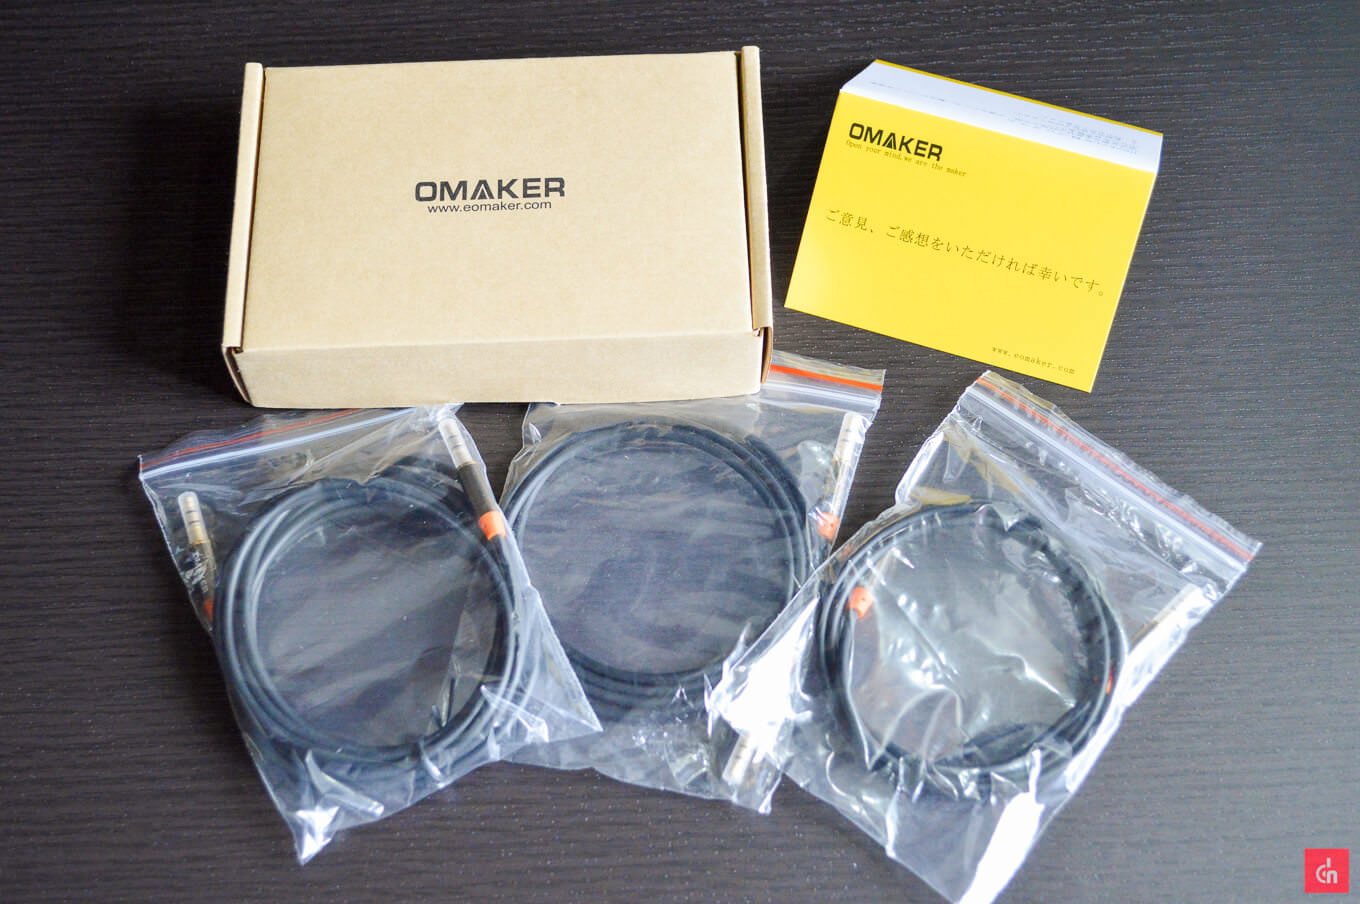 03_20160131_omaker-auxcableset